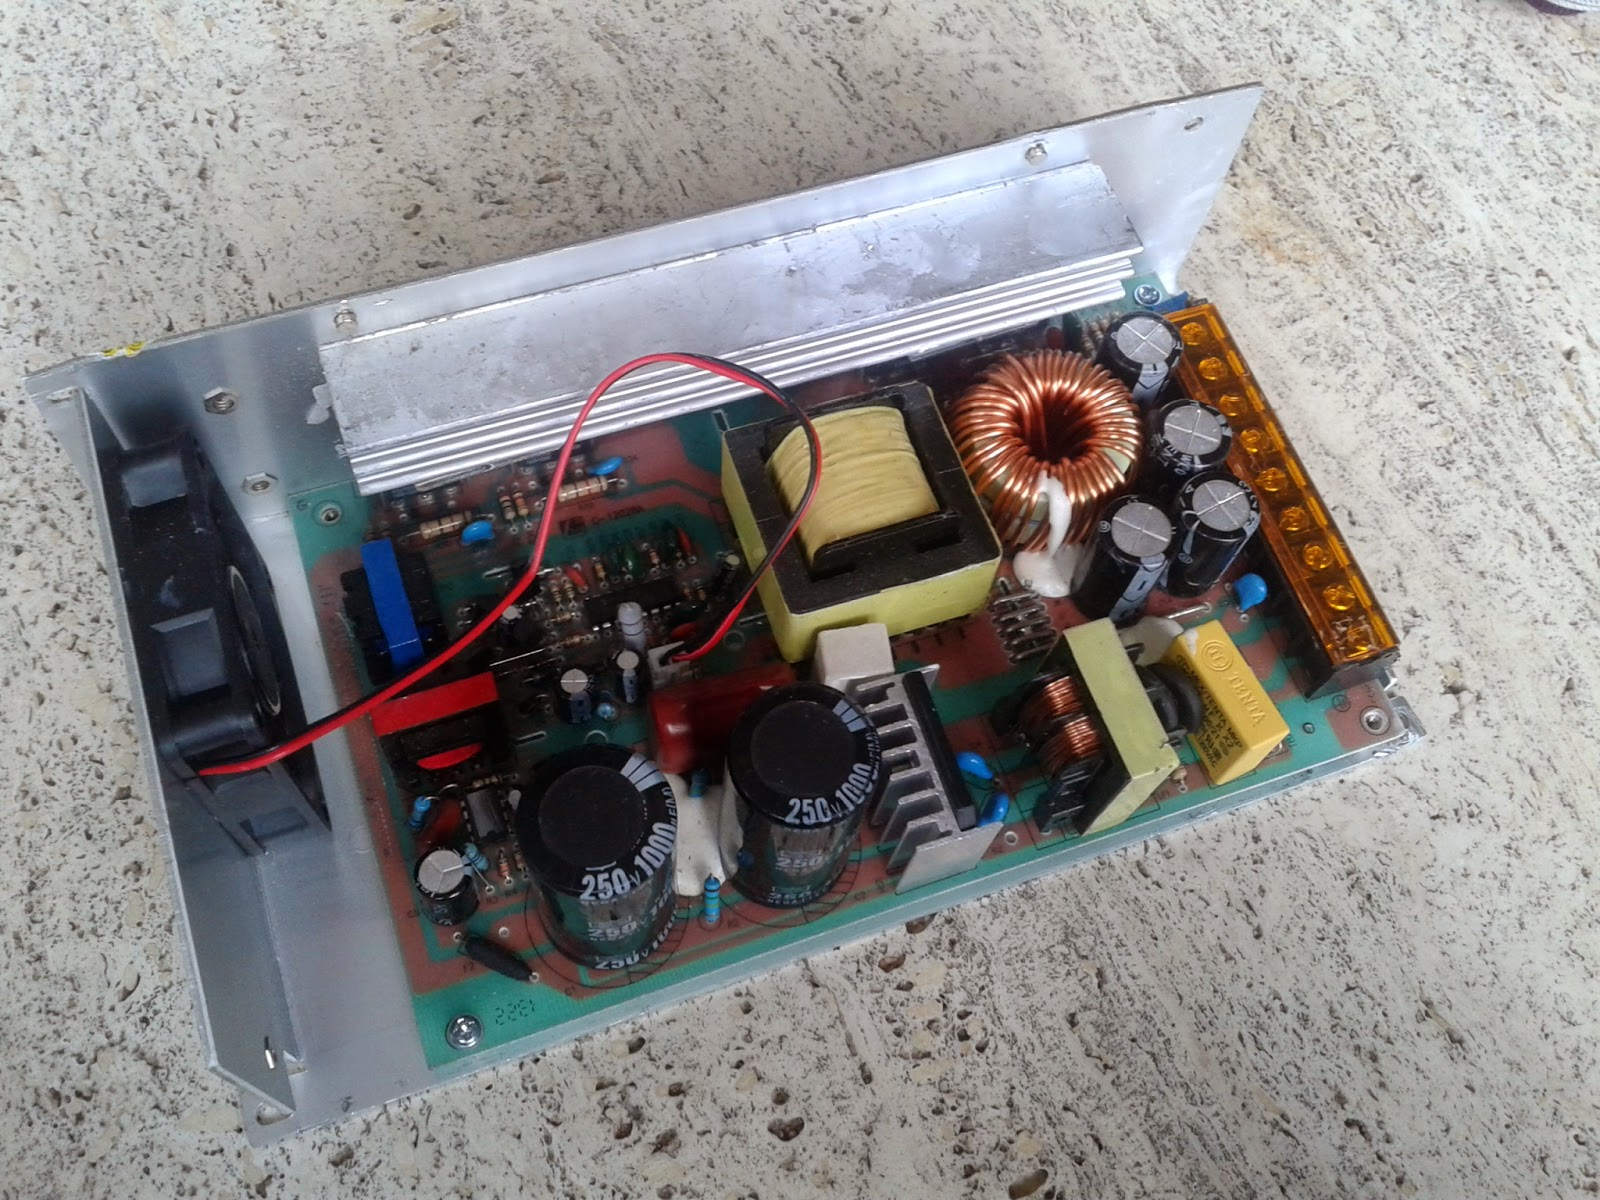 Help Wanted Cheap Chinese Power Supplies 12v 500w Teardown Supply Tutorial Smps Here Is A Look At It Once Open